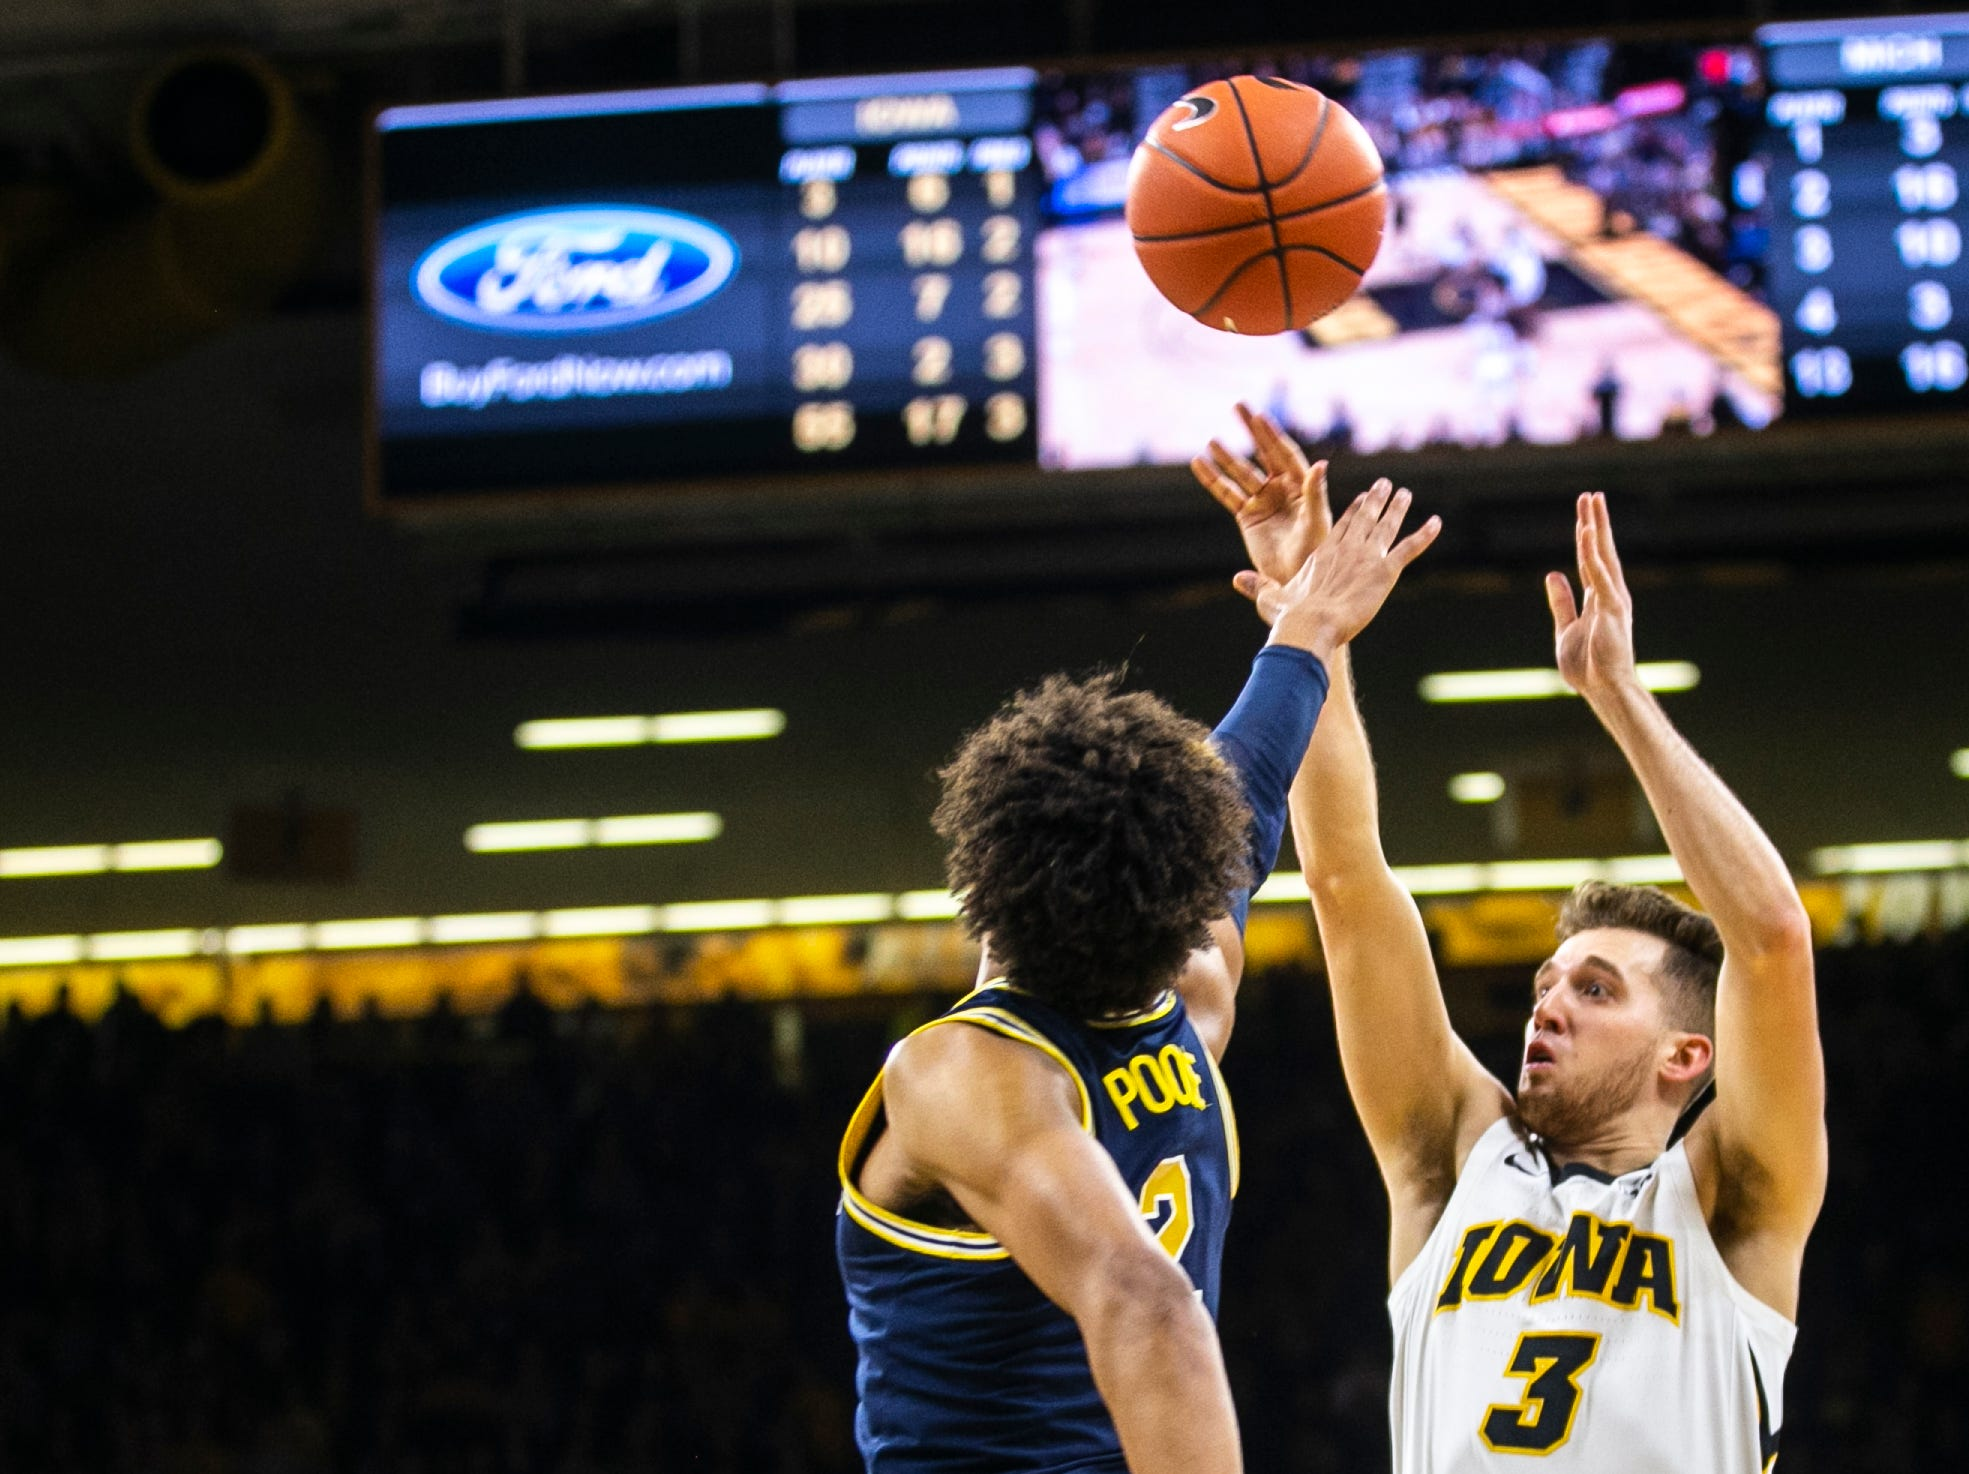 Iowa guard Jordan Bohannon (3) attempts a 3-point basket during a NCAA Big Ten Conference men's basketball game on Friday, Feb. 1, 2019, at Carver-Hawkeye Arena in Iowa City, Iowa.